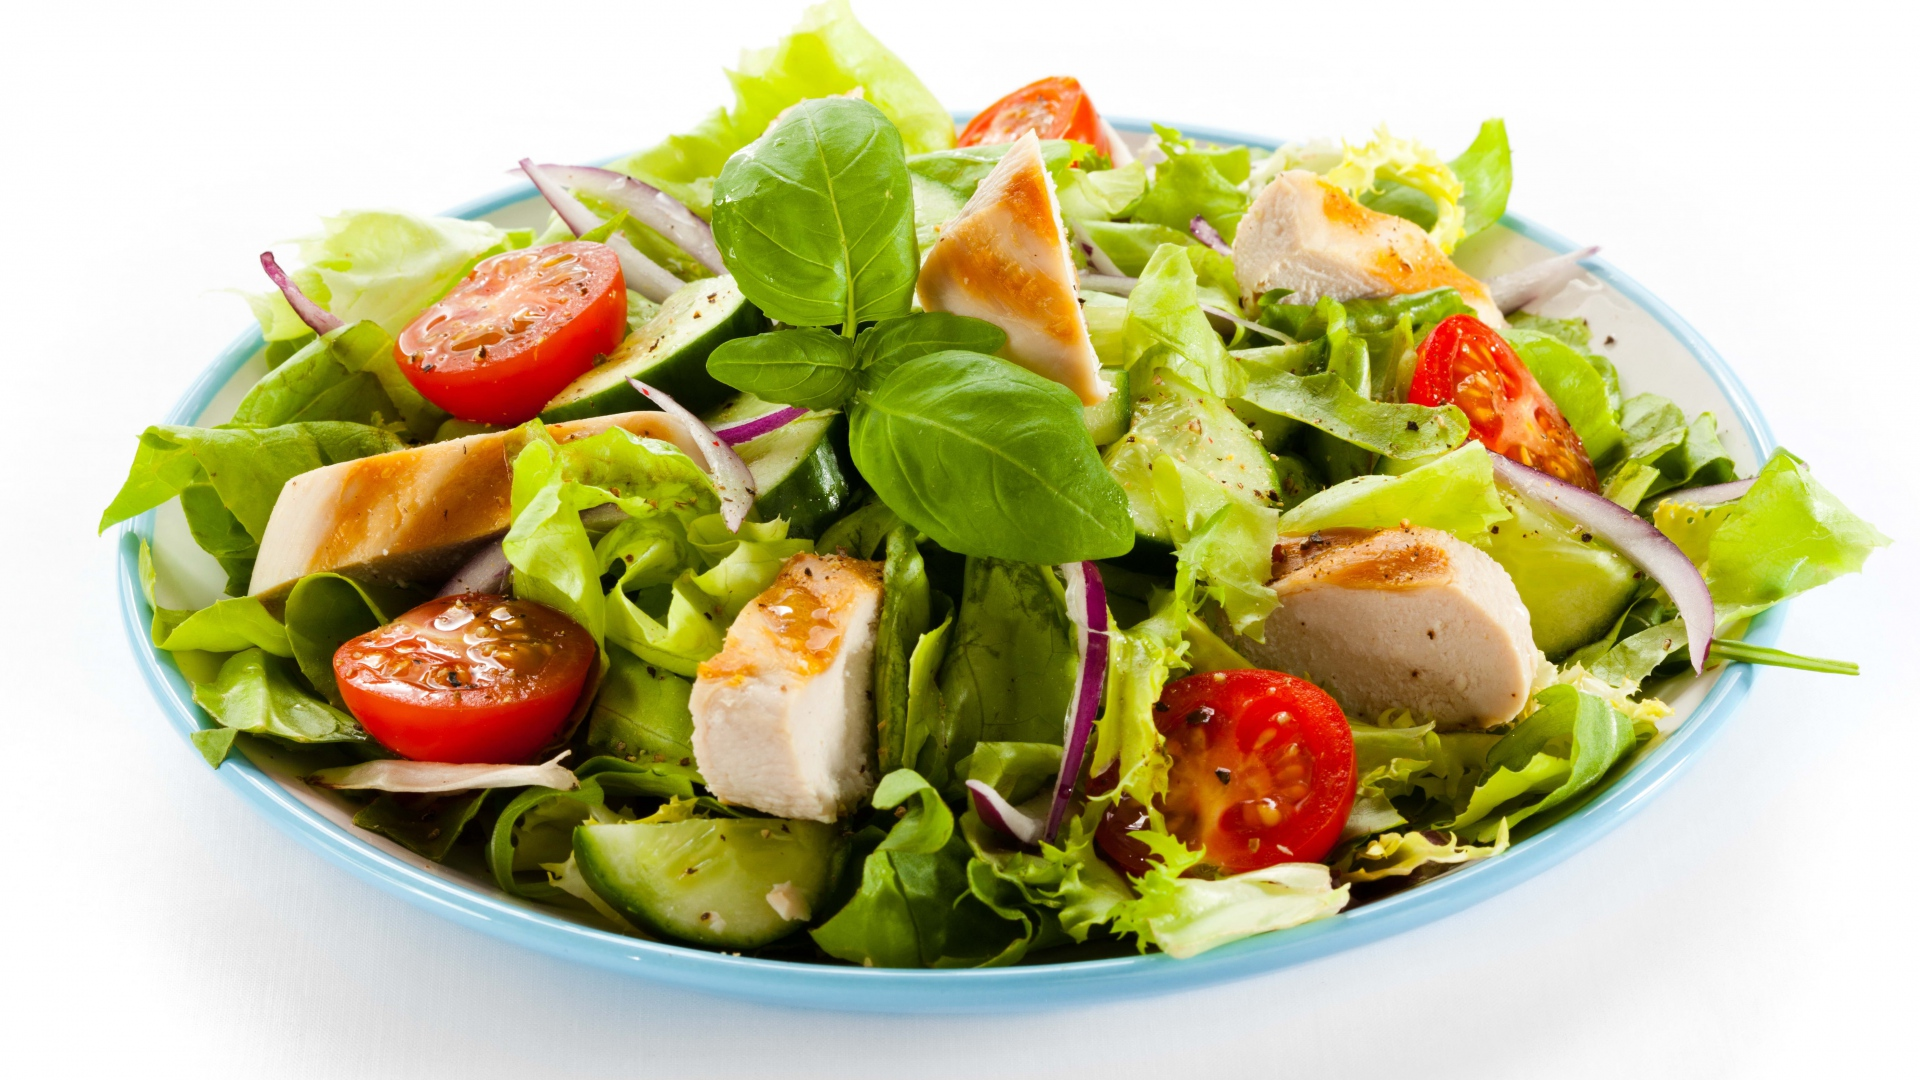 Amazing Salad Pictures & Backgrounds